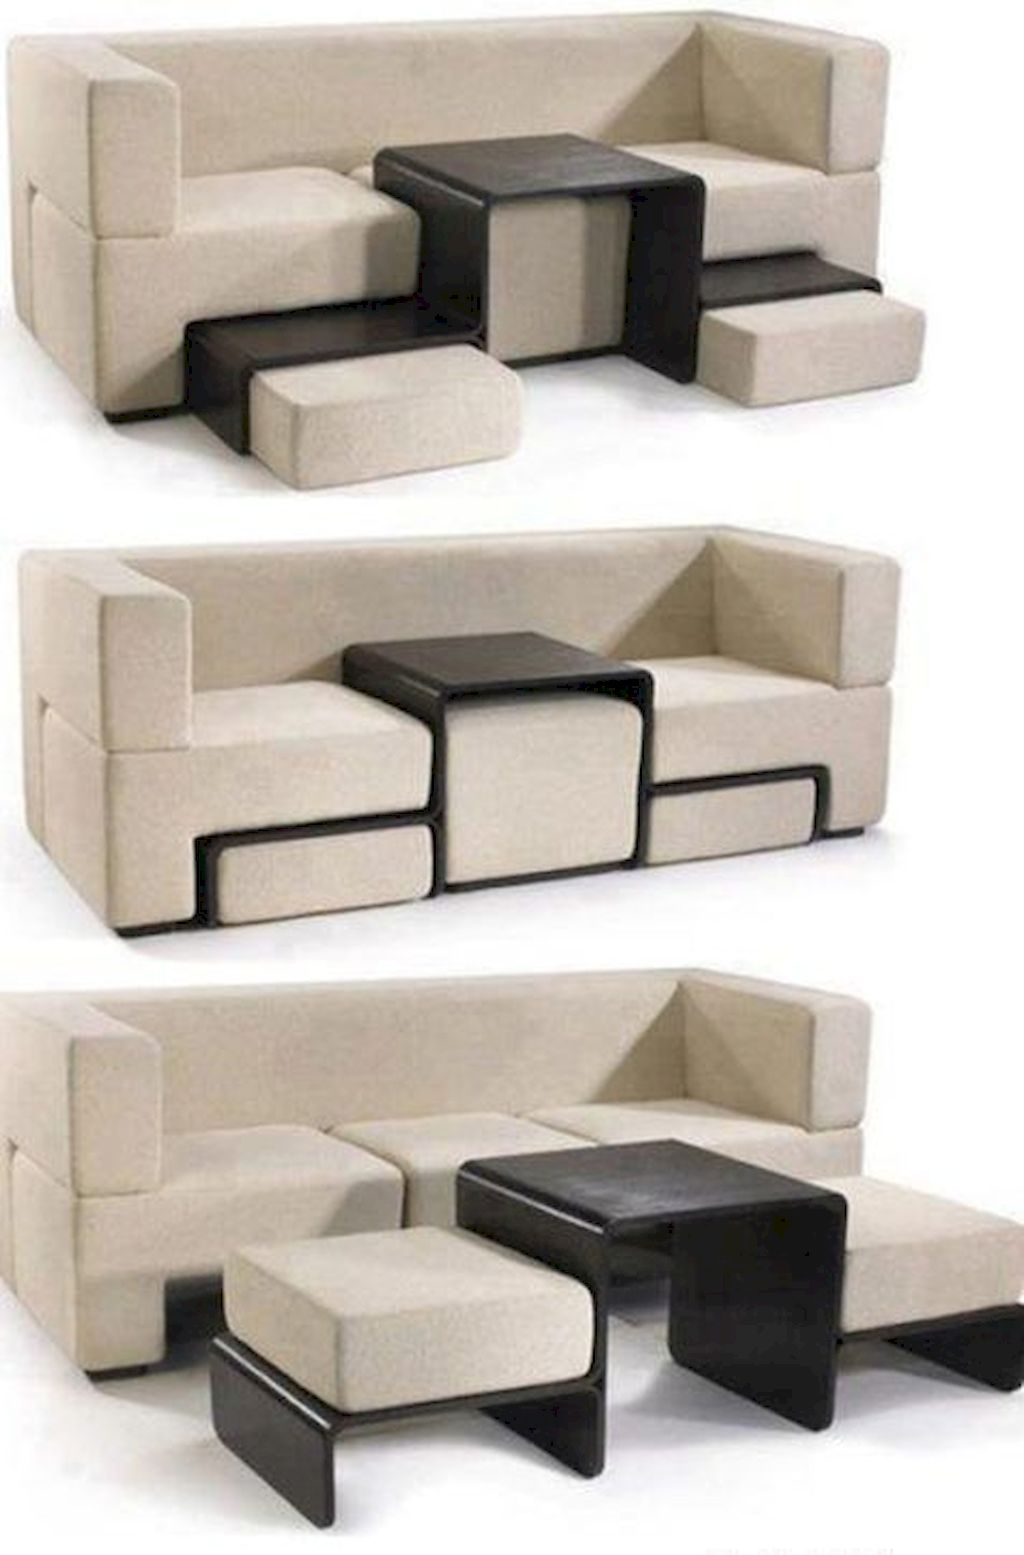 Charmant Modular Sofas For Small Spaces